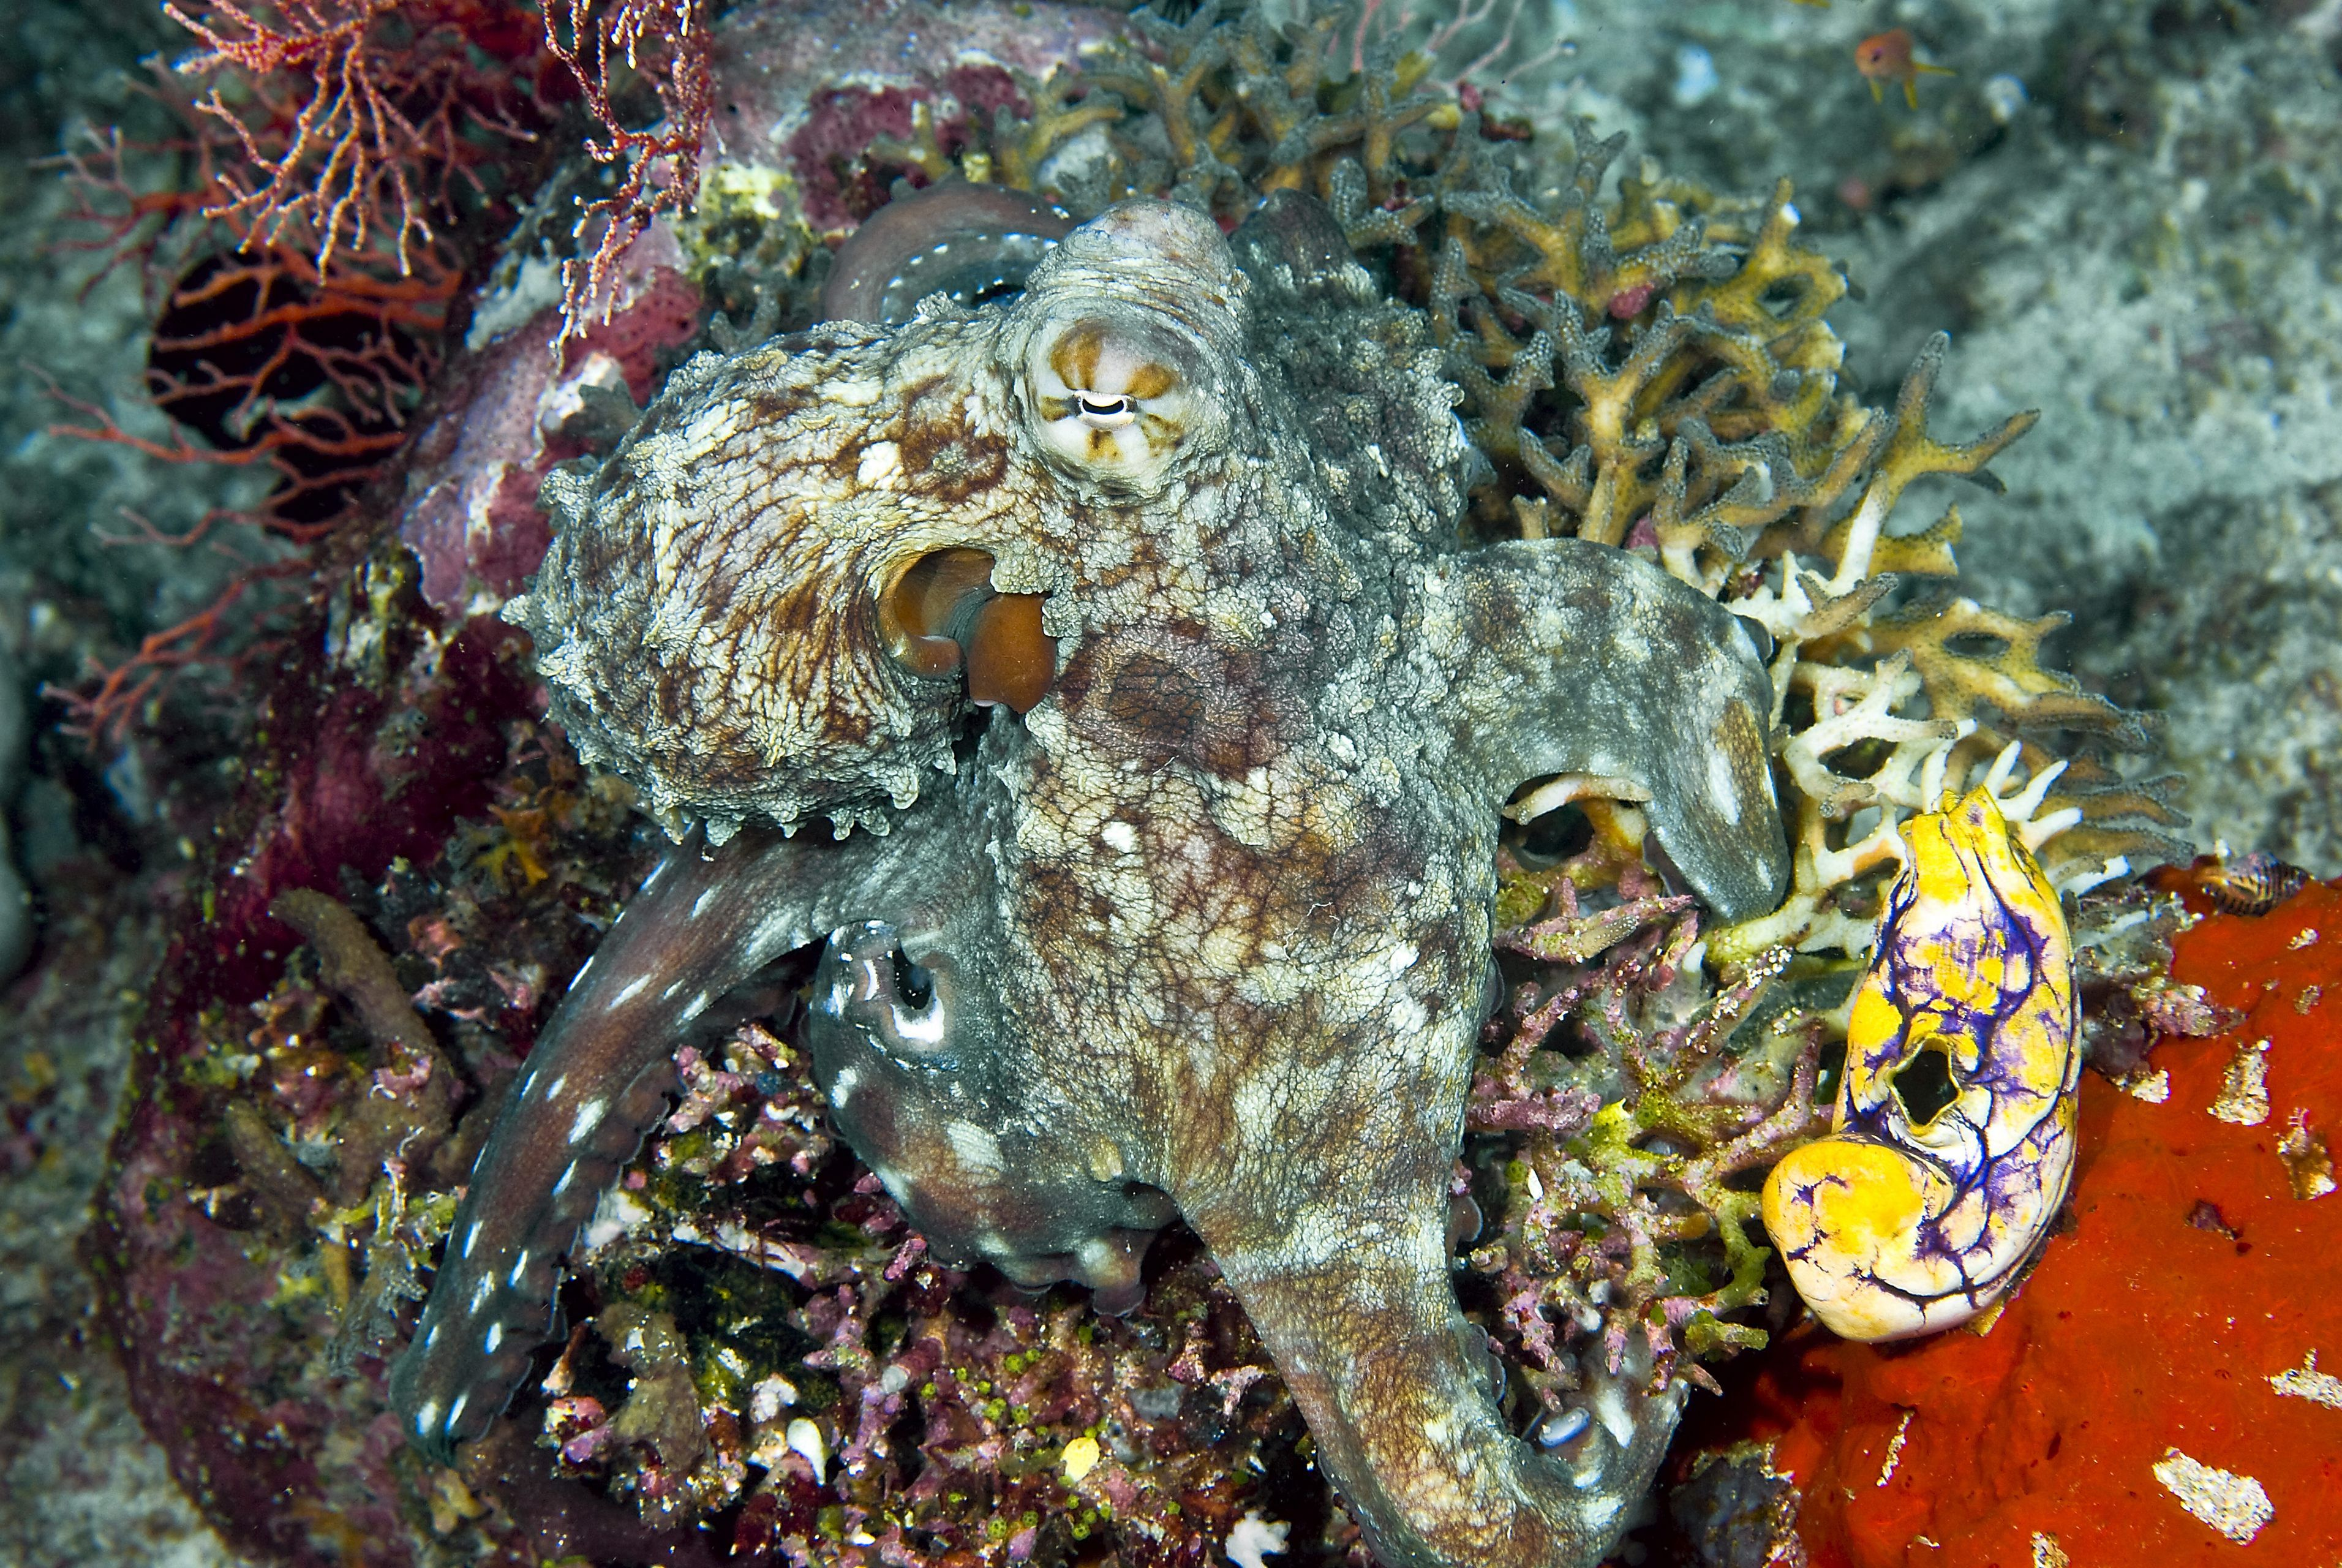 Ocean Camouflage: How the Octopus and Other Creatures Blend In